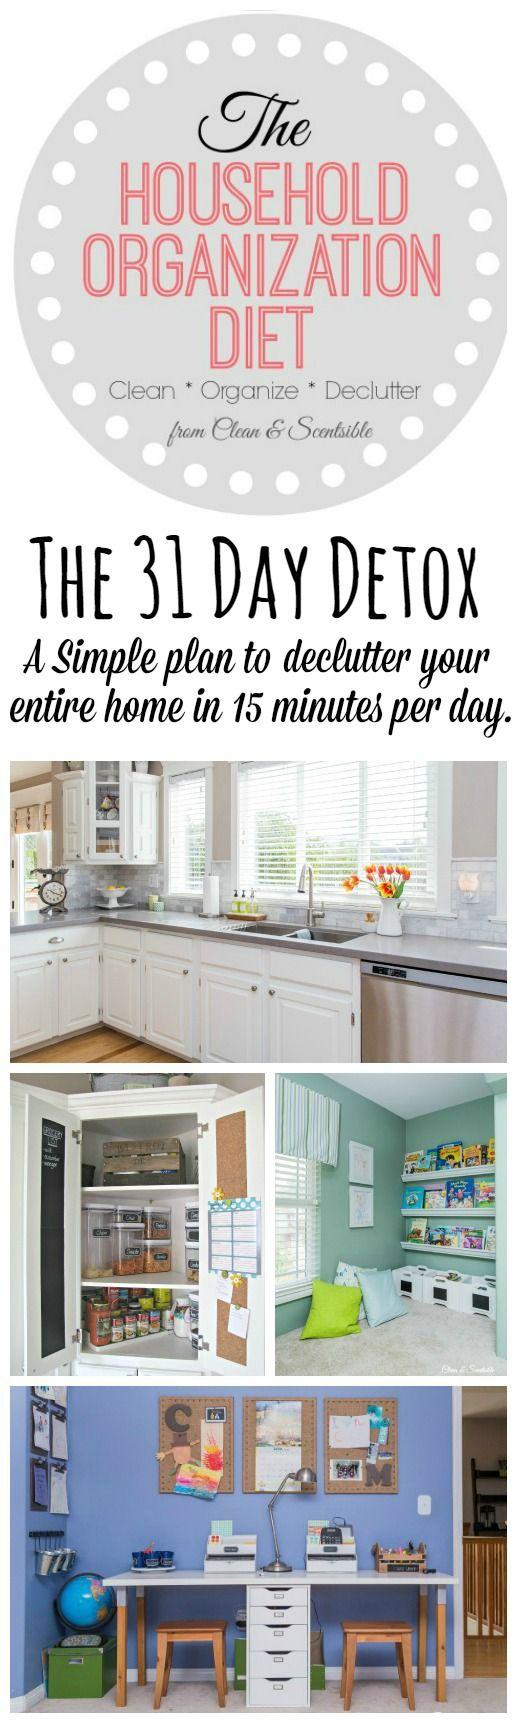 Add this month long decluttering plan to your spring cleaning checklist and start the season off with a fresh new home! // cleanandscentsible.com